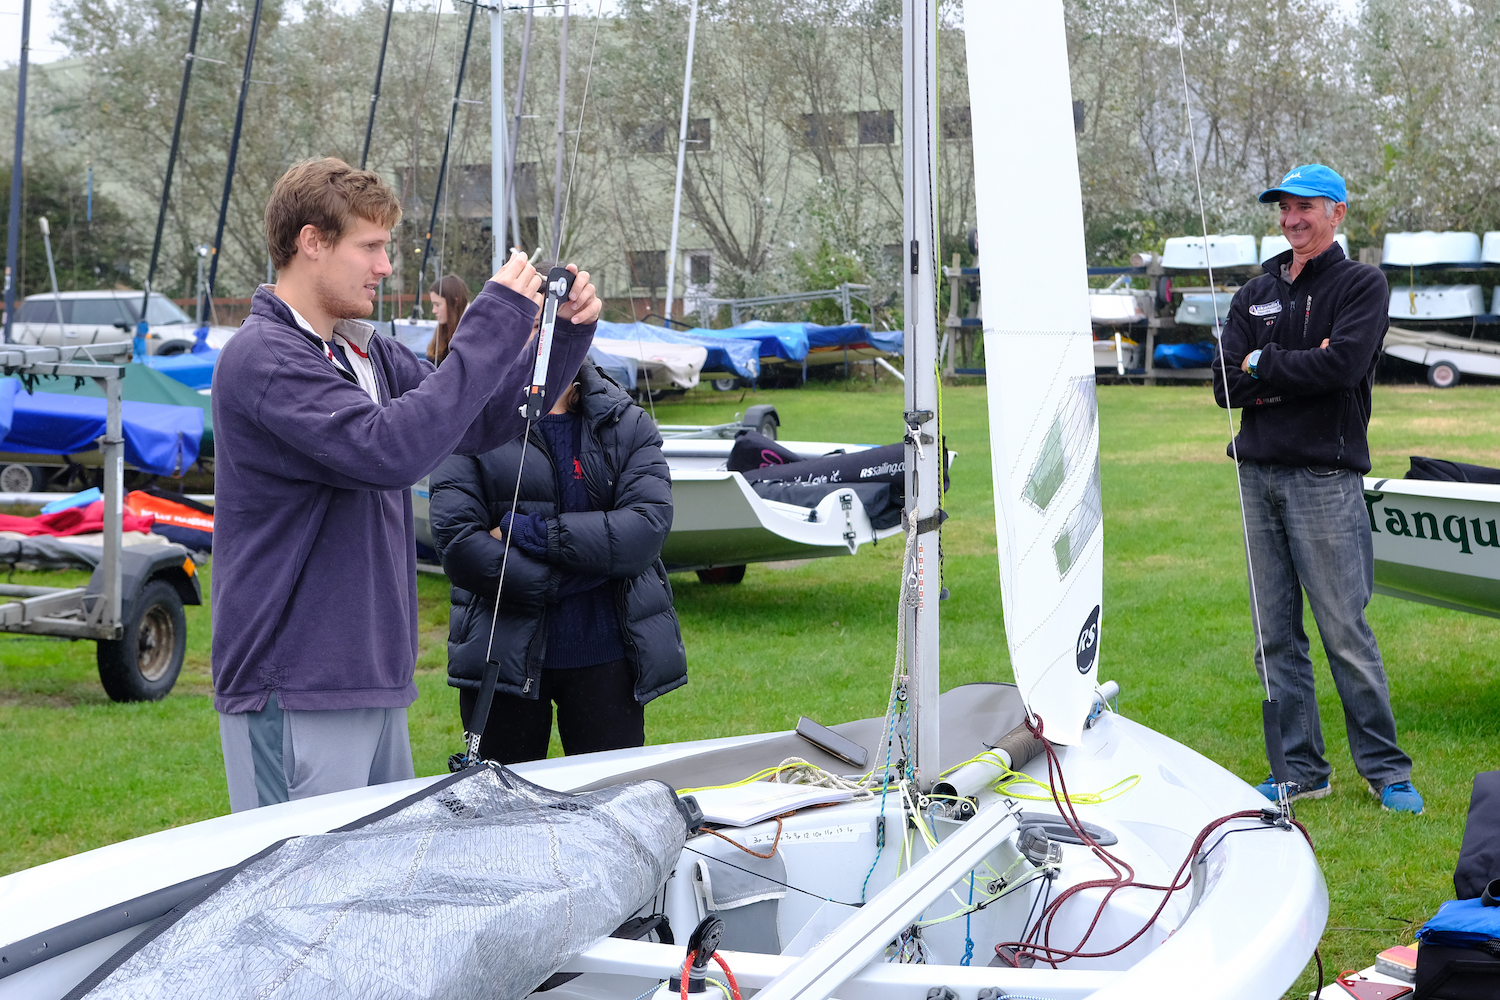 Tuning for light wind speed – photo Roger Mant